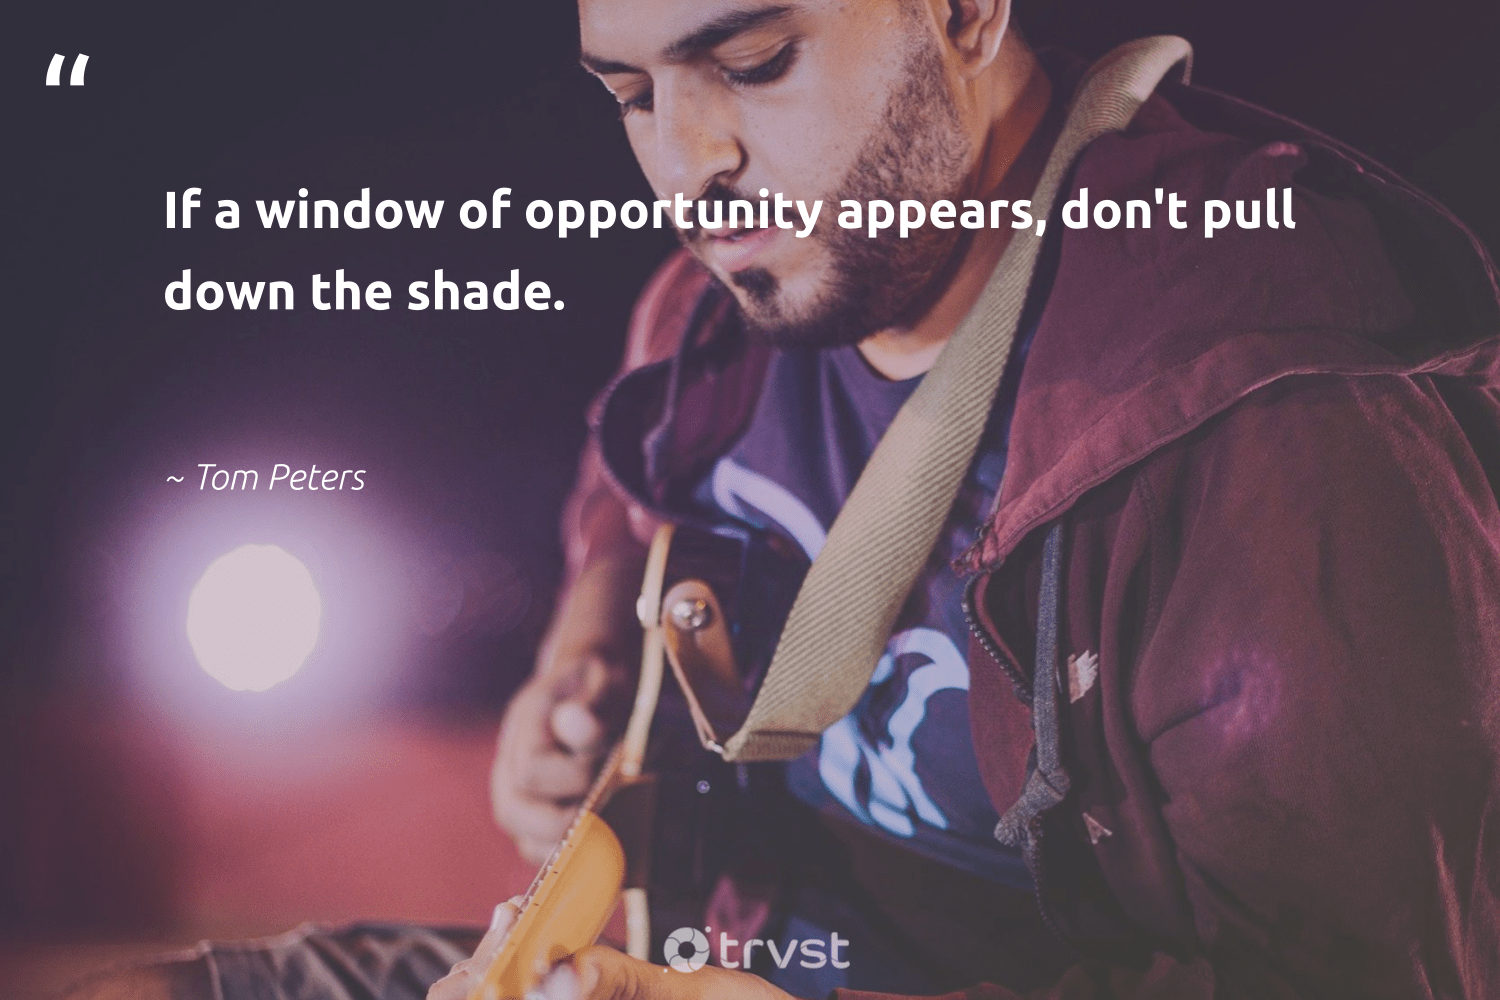 """If a window of opportunity appears, don't pull down the shade.""  - Tom Peters #trvst #quotes #begreat #impact #softskills #socialchange #futureofwork #bethechange #nevergiveup #beinspired #dotherightthing #socialimpact"